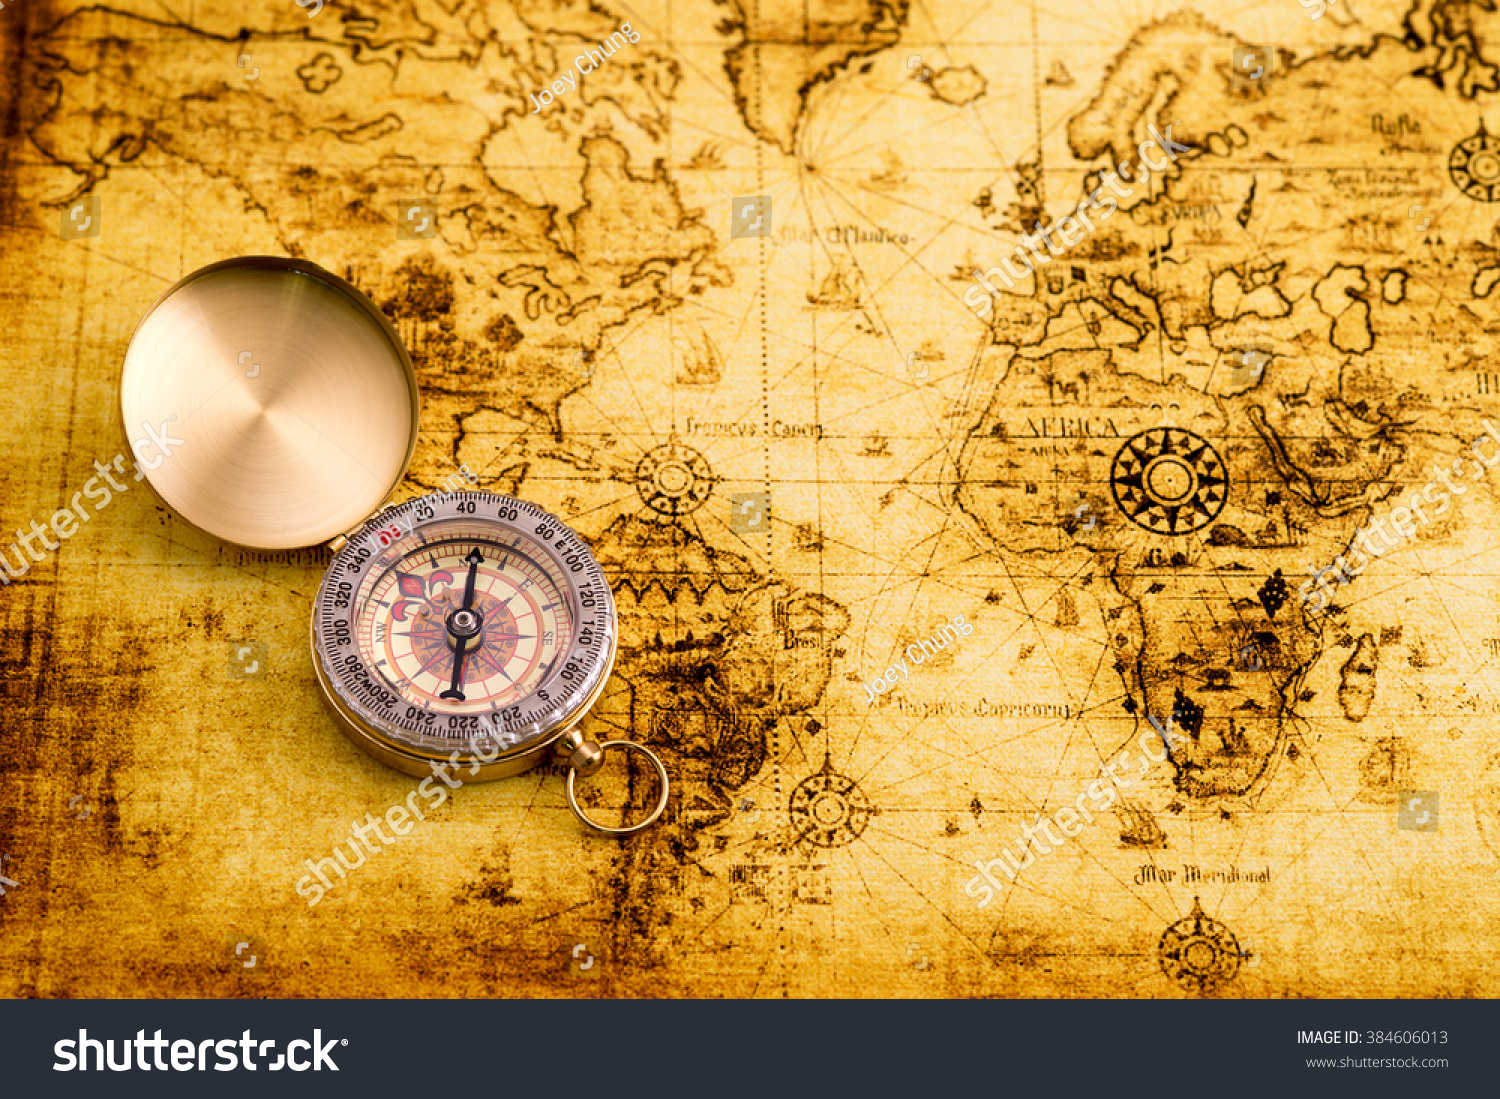 Vintage Compass On World Map Stock Photo (Edit Now